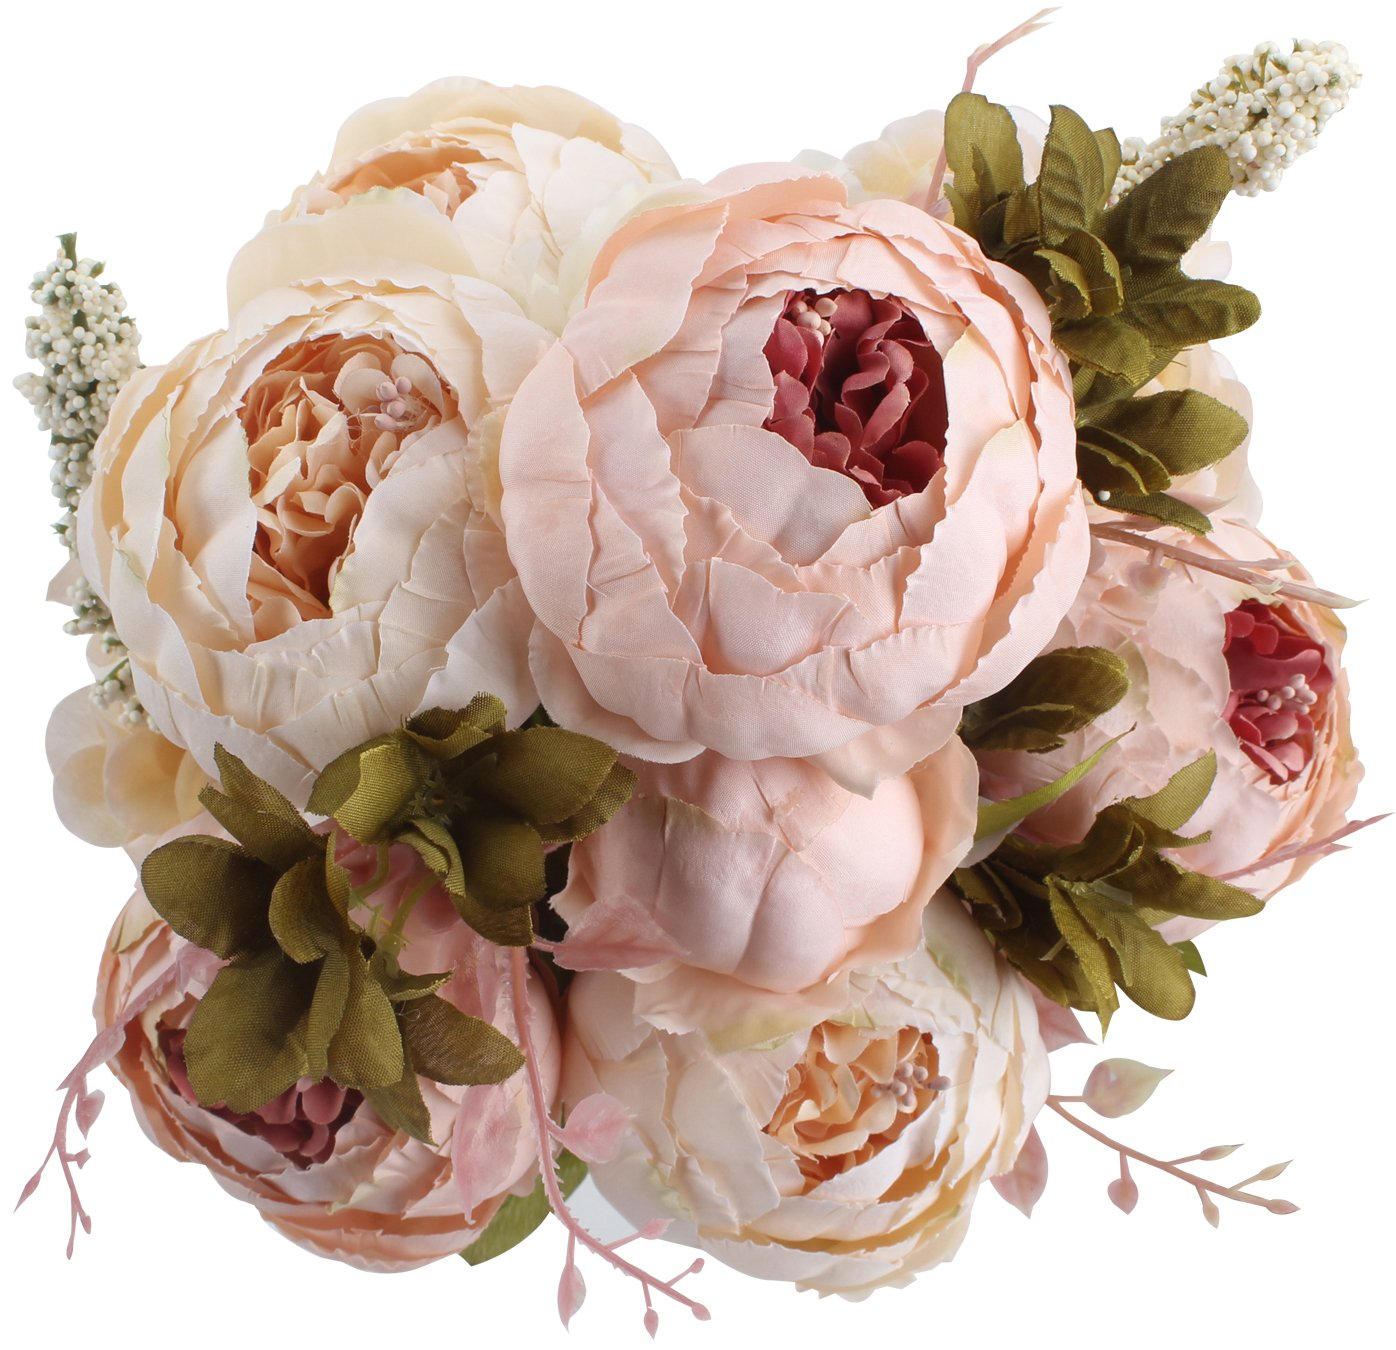 Amazon duovlo fake flowers vintage artificial peony silk amazon duovlo fake flowers vintage artificial peony silk flowers wedding home decorationpack of 1 light pink home kitchen izmirmasajfo Images